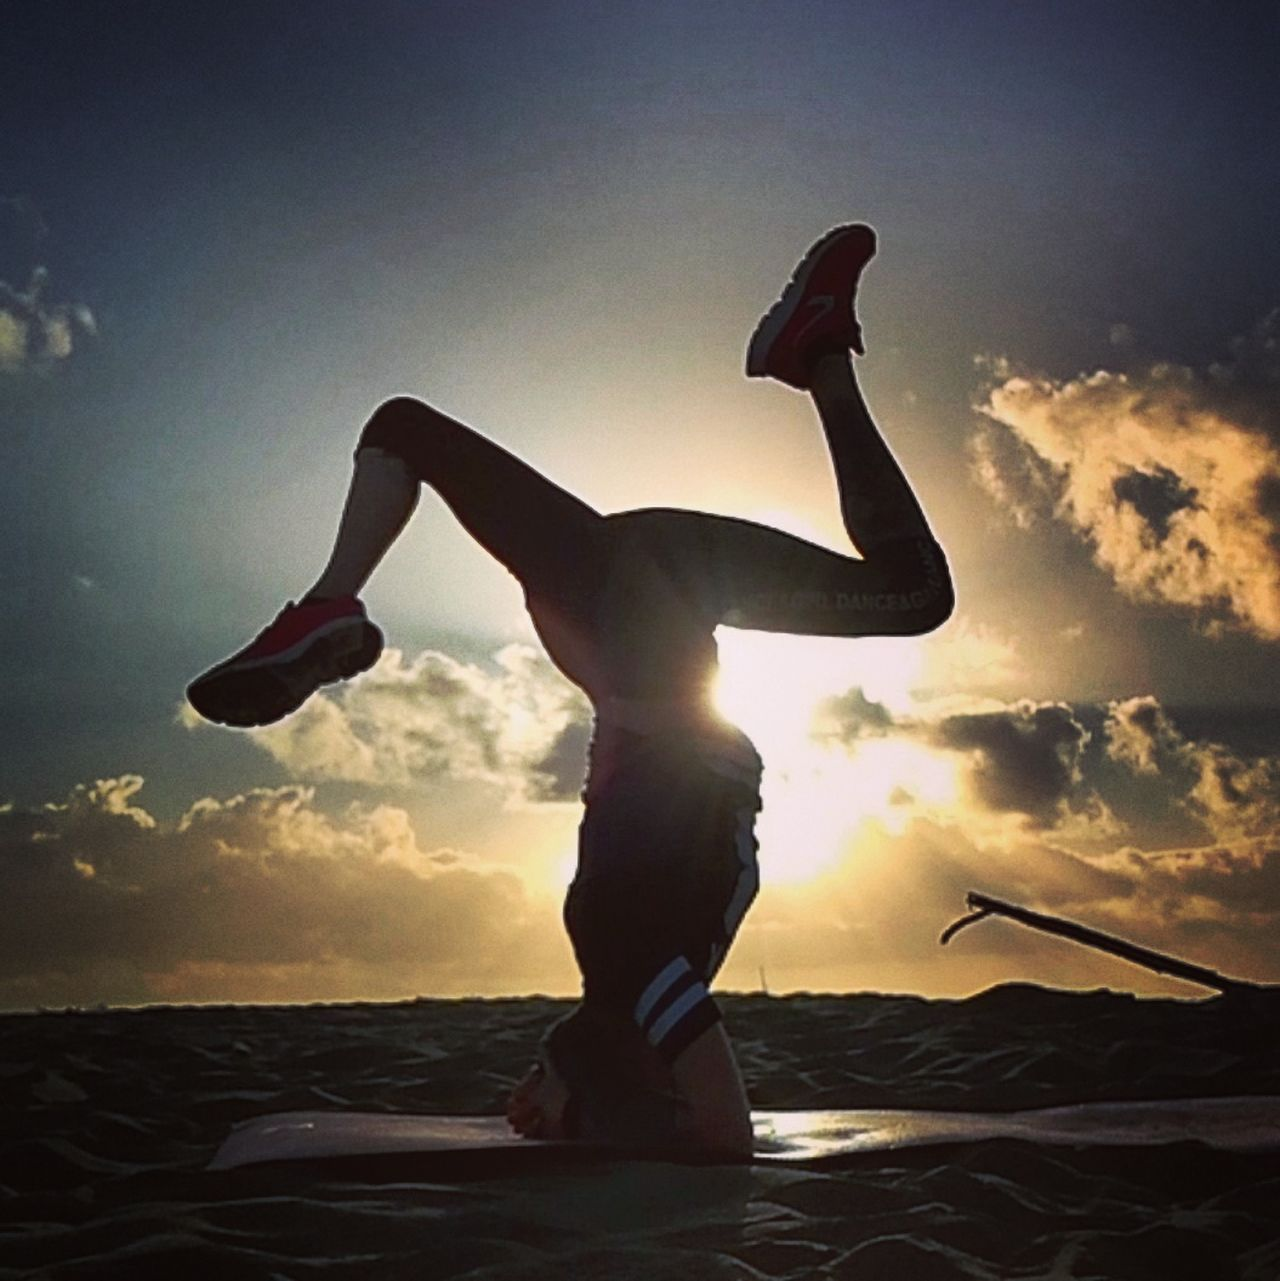 Silhouette One Person Adult Flexibility Exercising People Lifestyles Healthy Lifestyle Sport Real People Water Outdoors Sky Nature Day Relax Artistic Photo Coolpics Women Real Life Body & Fitness Sunlight Sunday Young Women Loveyoga